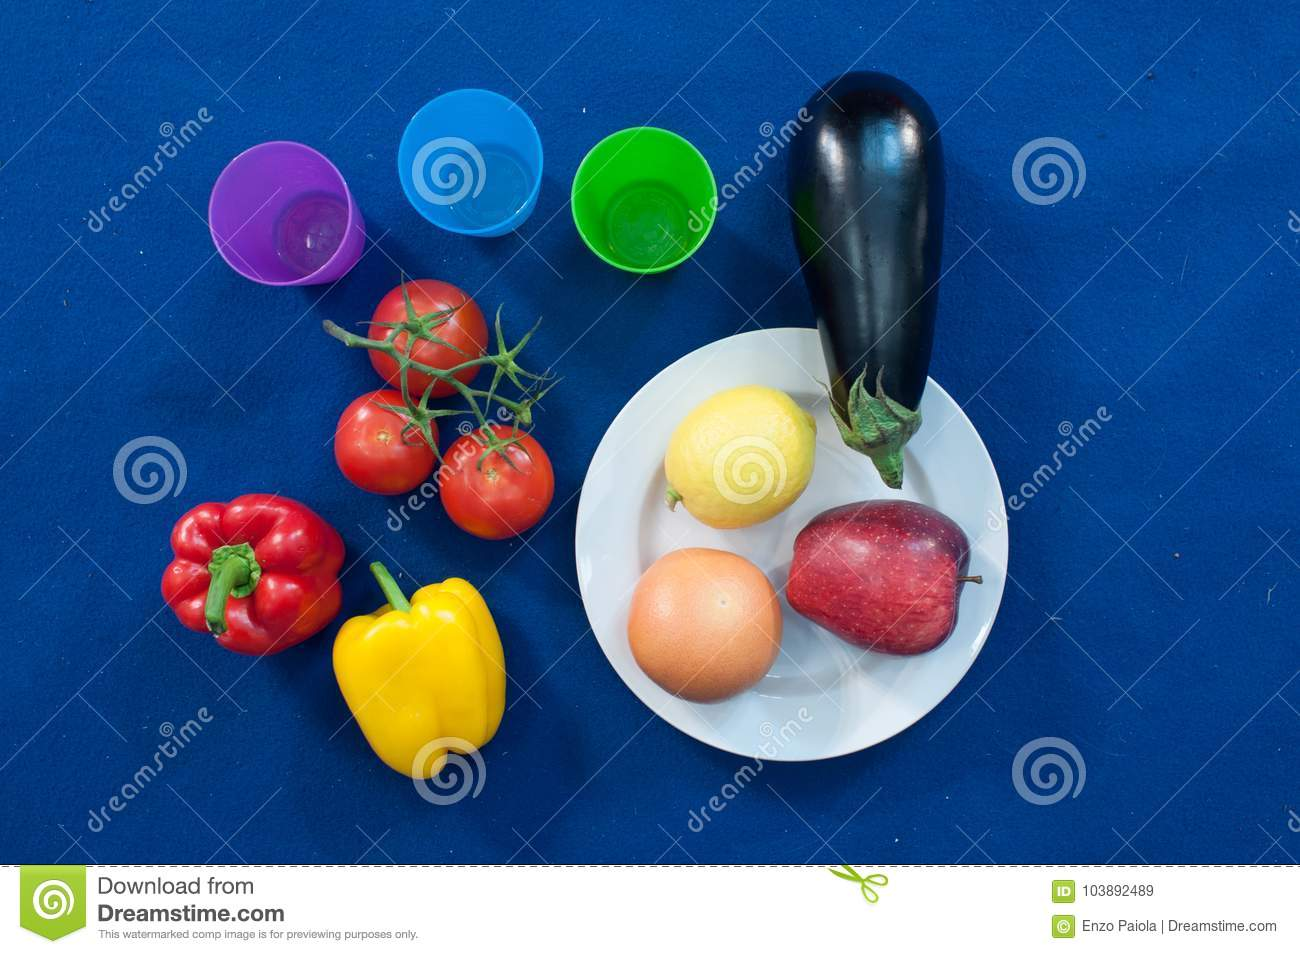 Vegetables and fruits are an important part of a healthy diet, and variety is as important